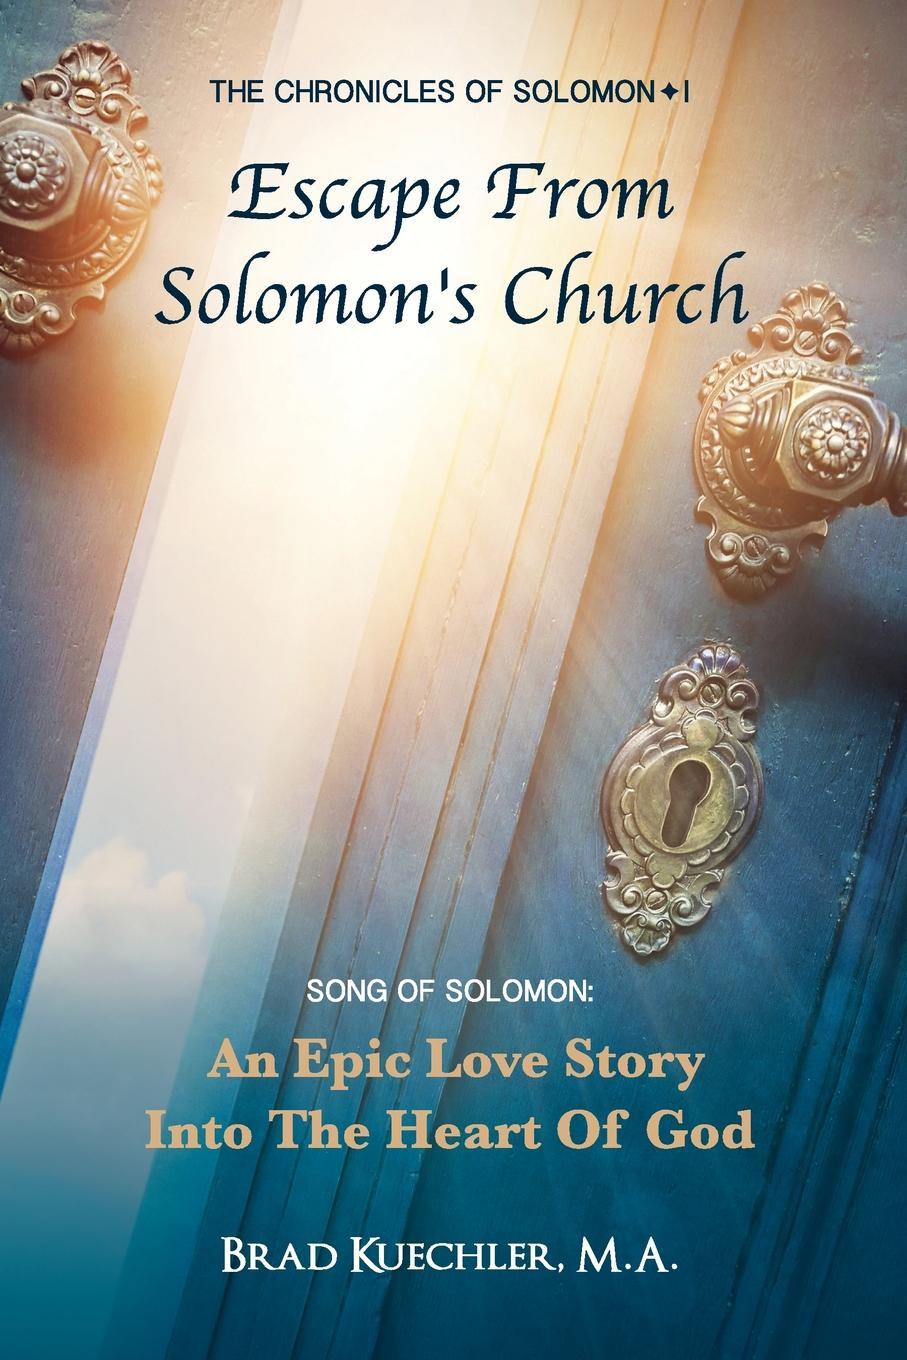 купить Brad Kuechler The Chronicles of Solomon I Escape From Solomon's Church. Song Of Solomon: An Epic Love Story Into The Heart Of God онлайн